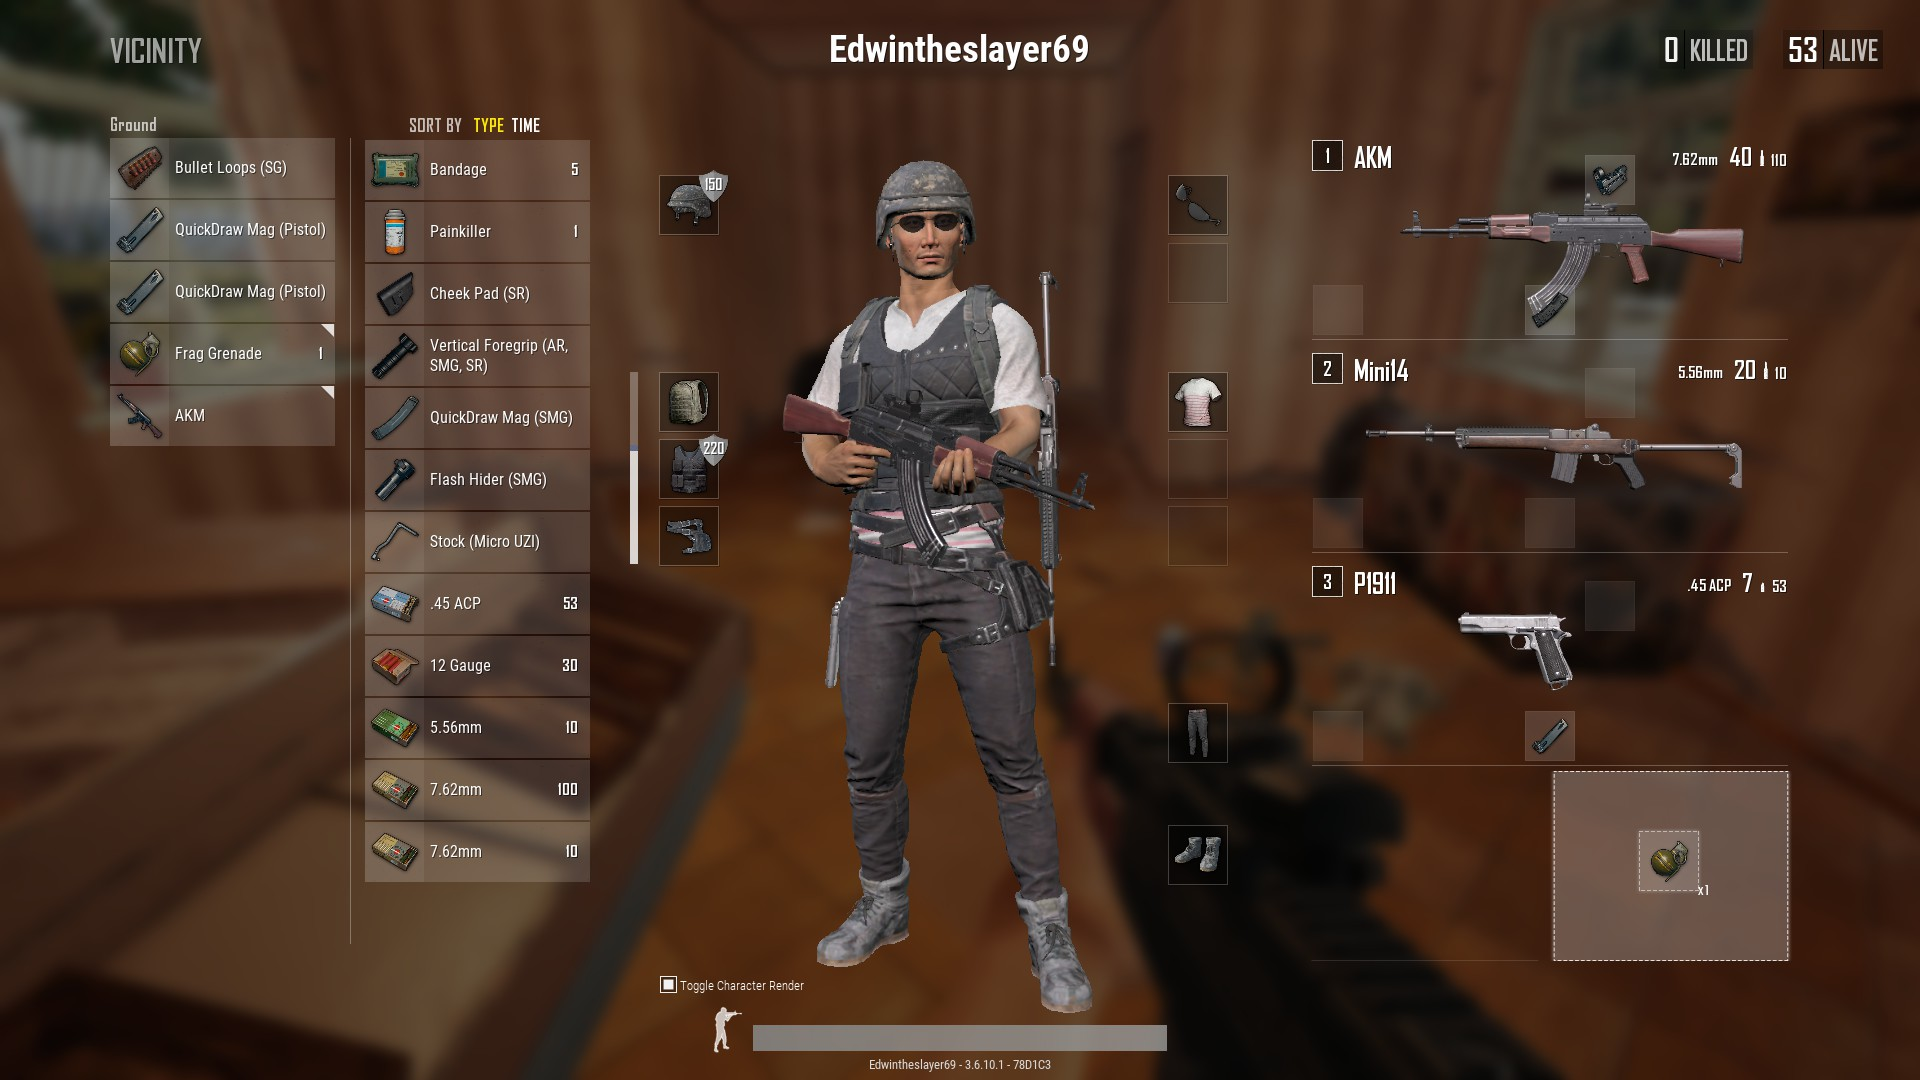 How To Equip Guns, Attachments And Grenades